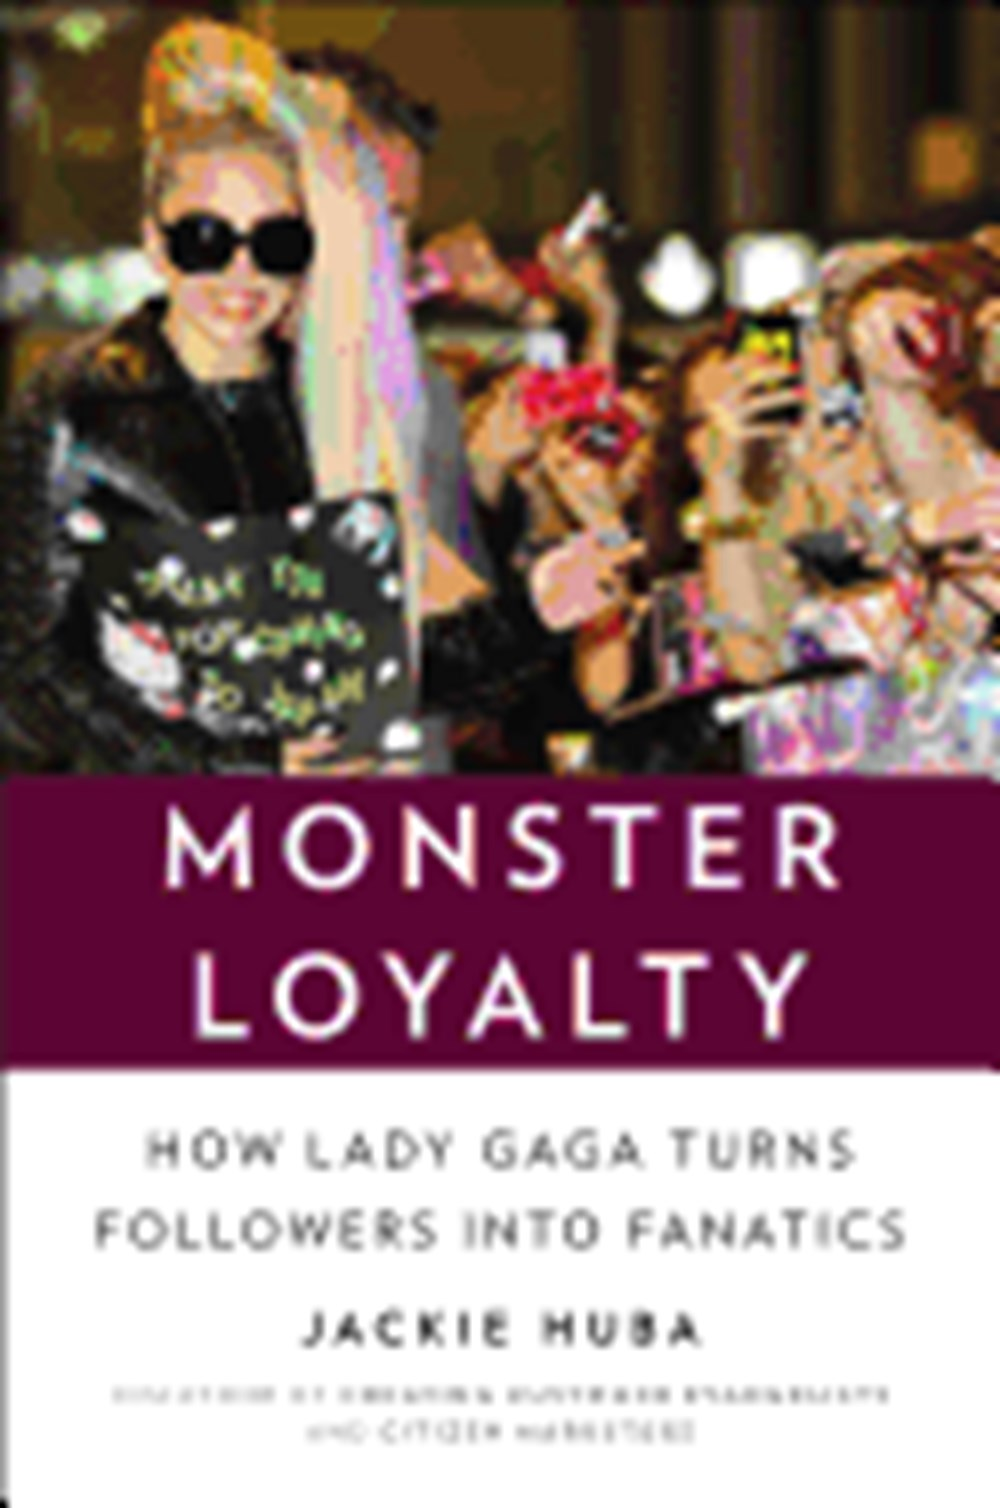 Monster Loyalty How Lady Gaga Turns Followers Into Fanatics